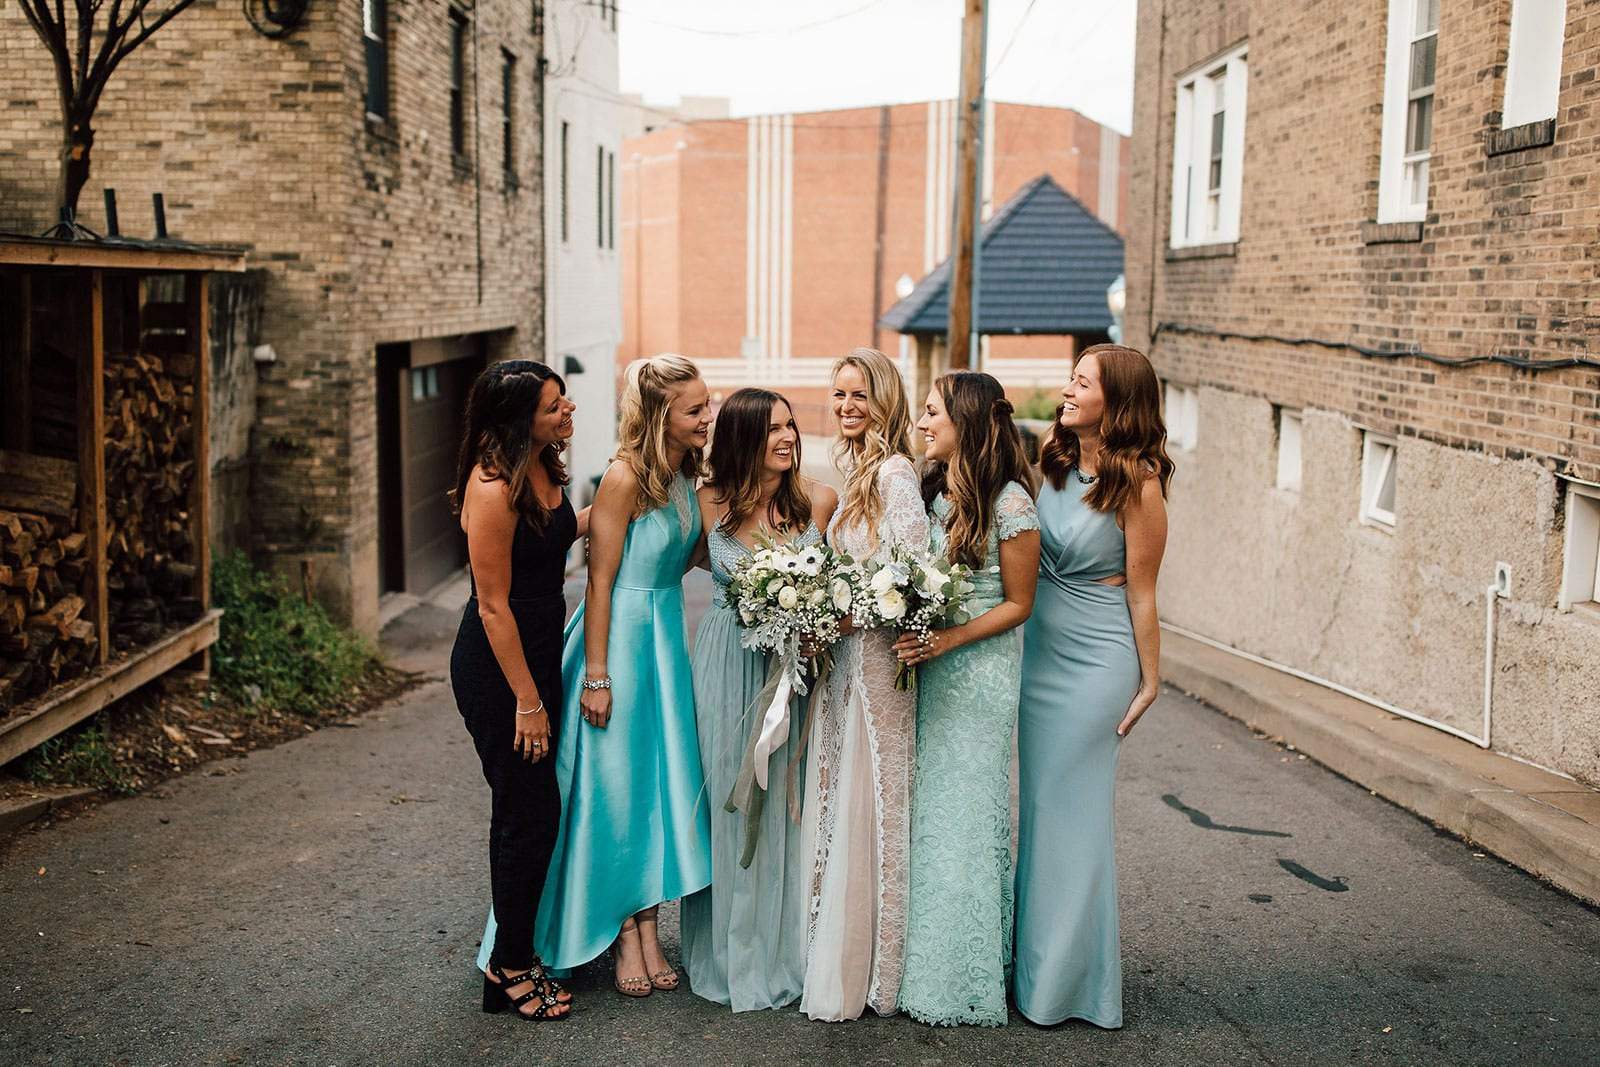 Bride wearing Grace Loves Lace Inca Gown standing with bridesmaids